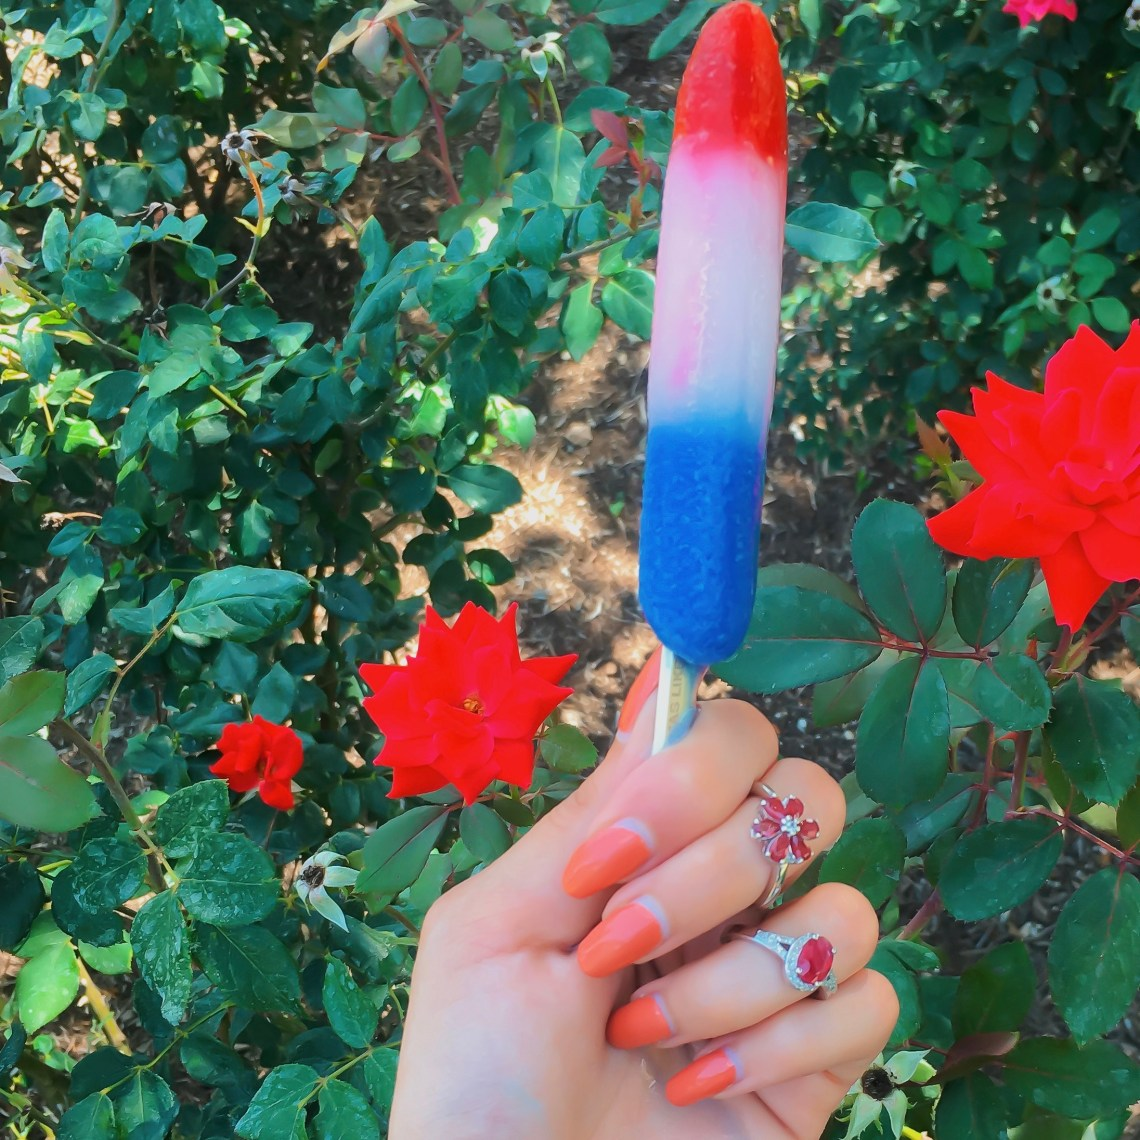 Woman's hand holding popsicle and wearing ruby rings.